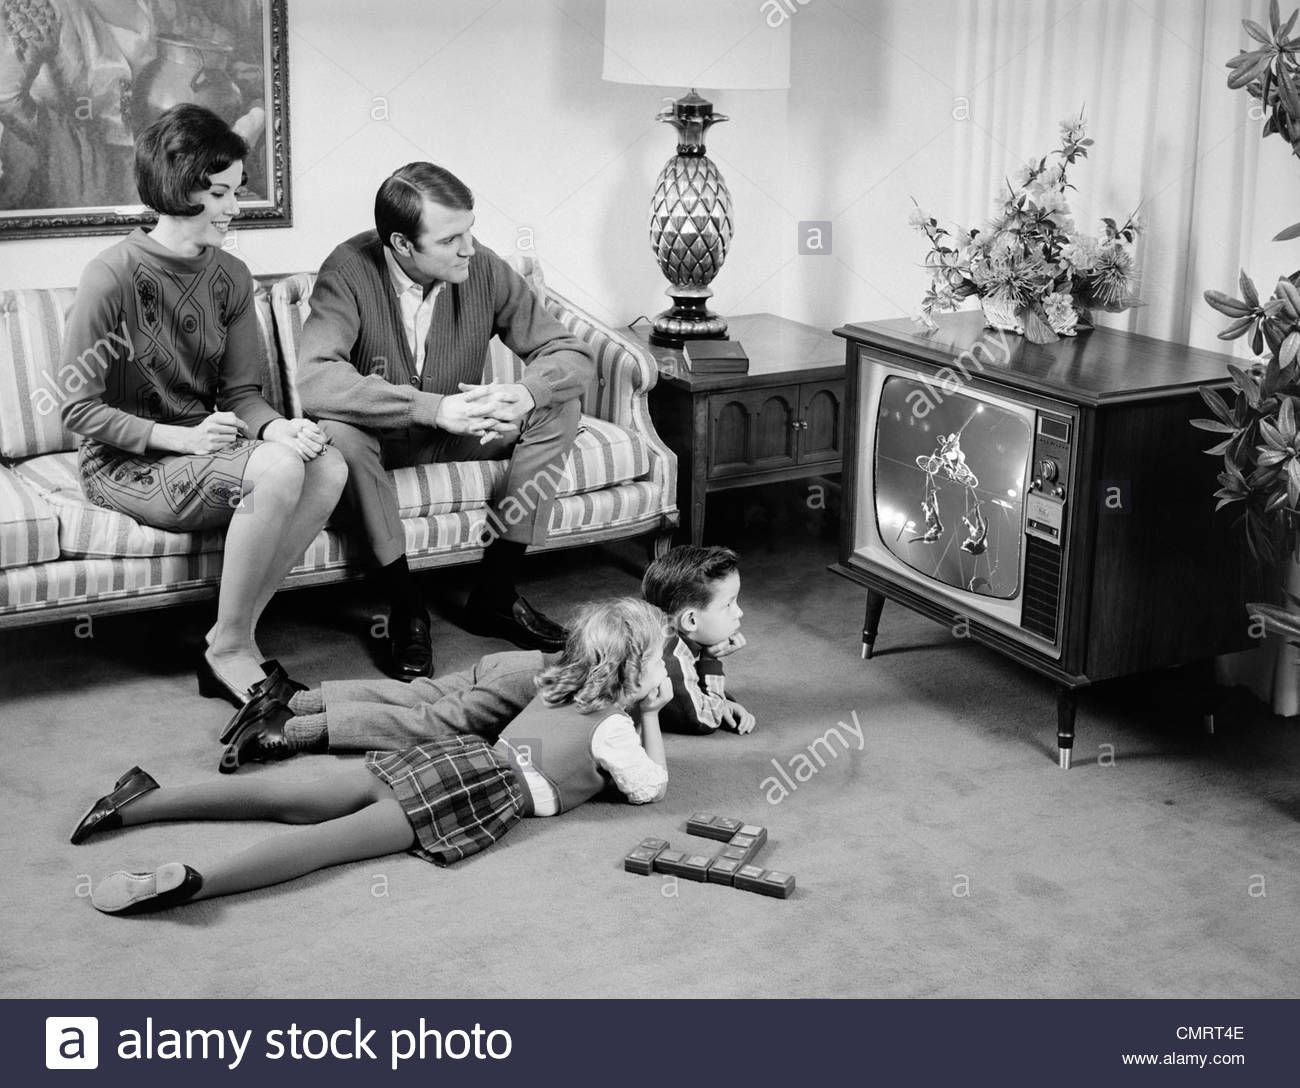 Image result for watching TV 1960s